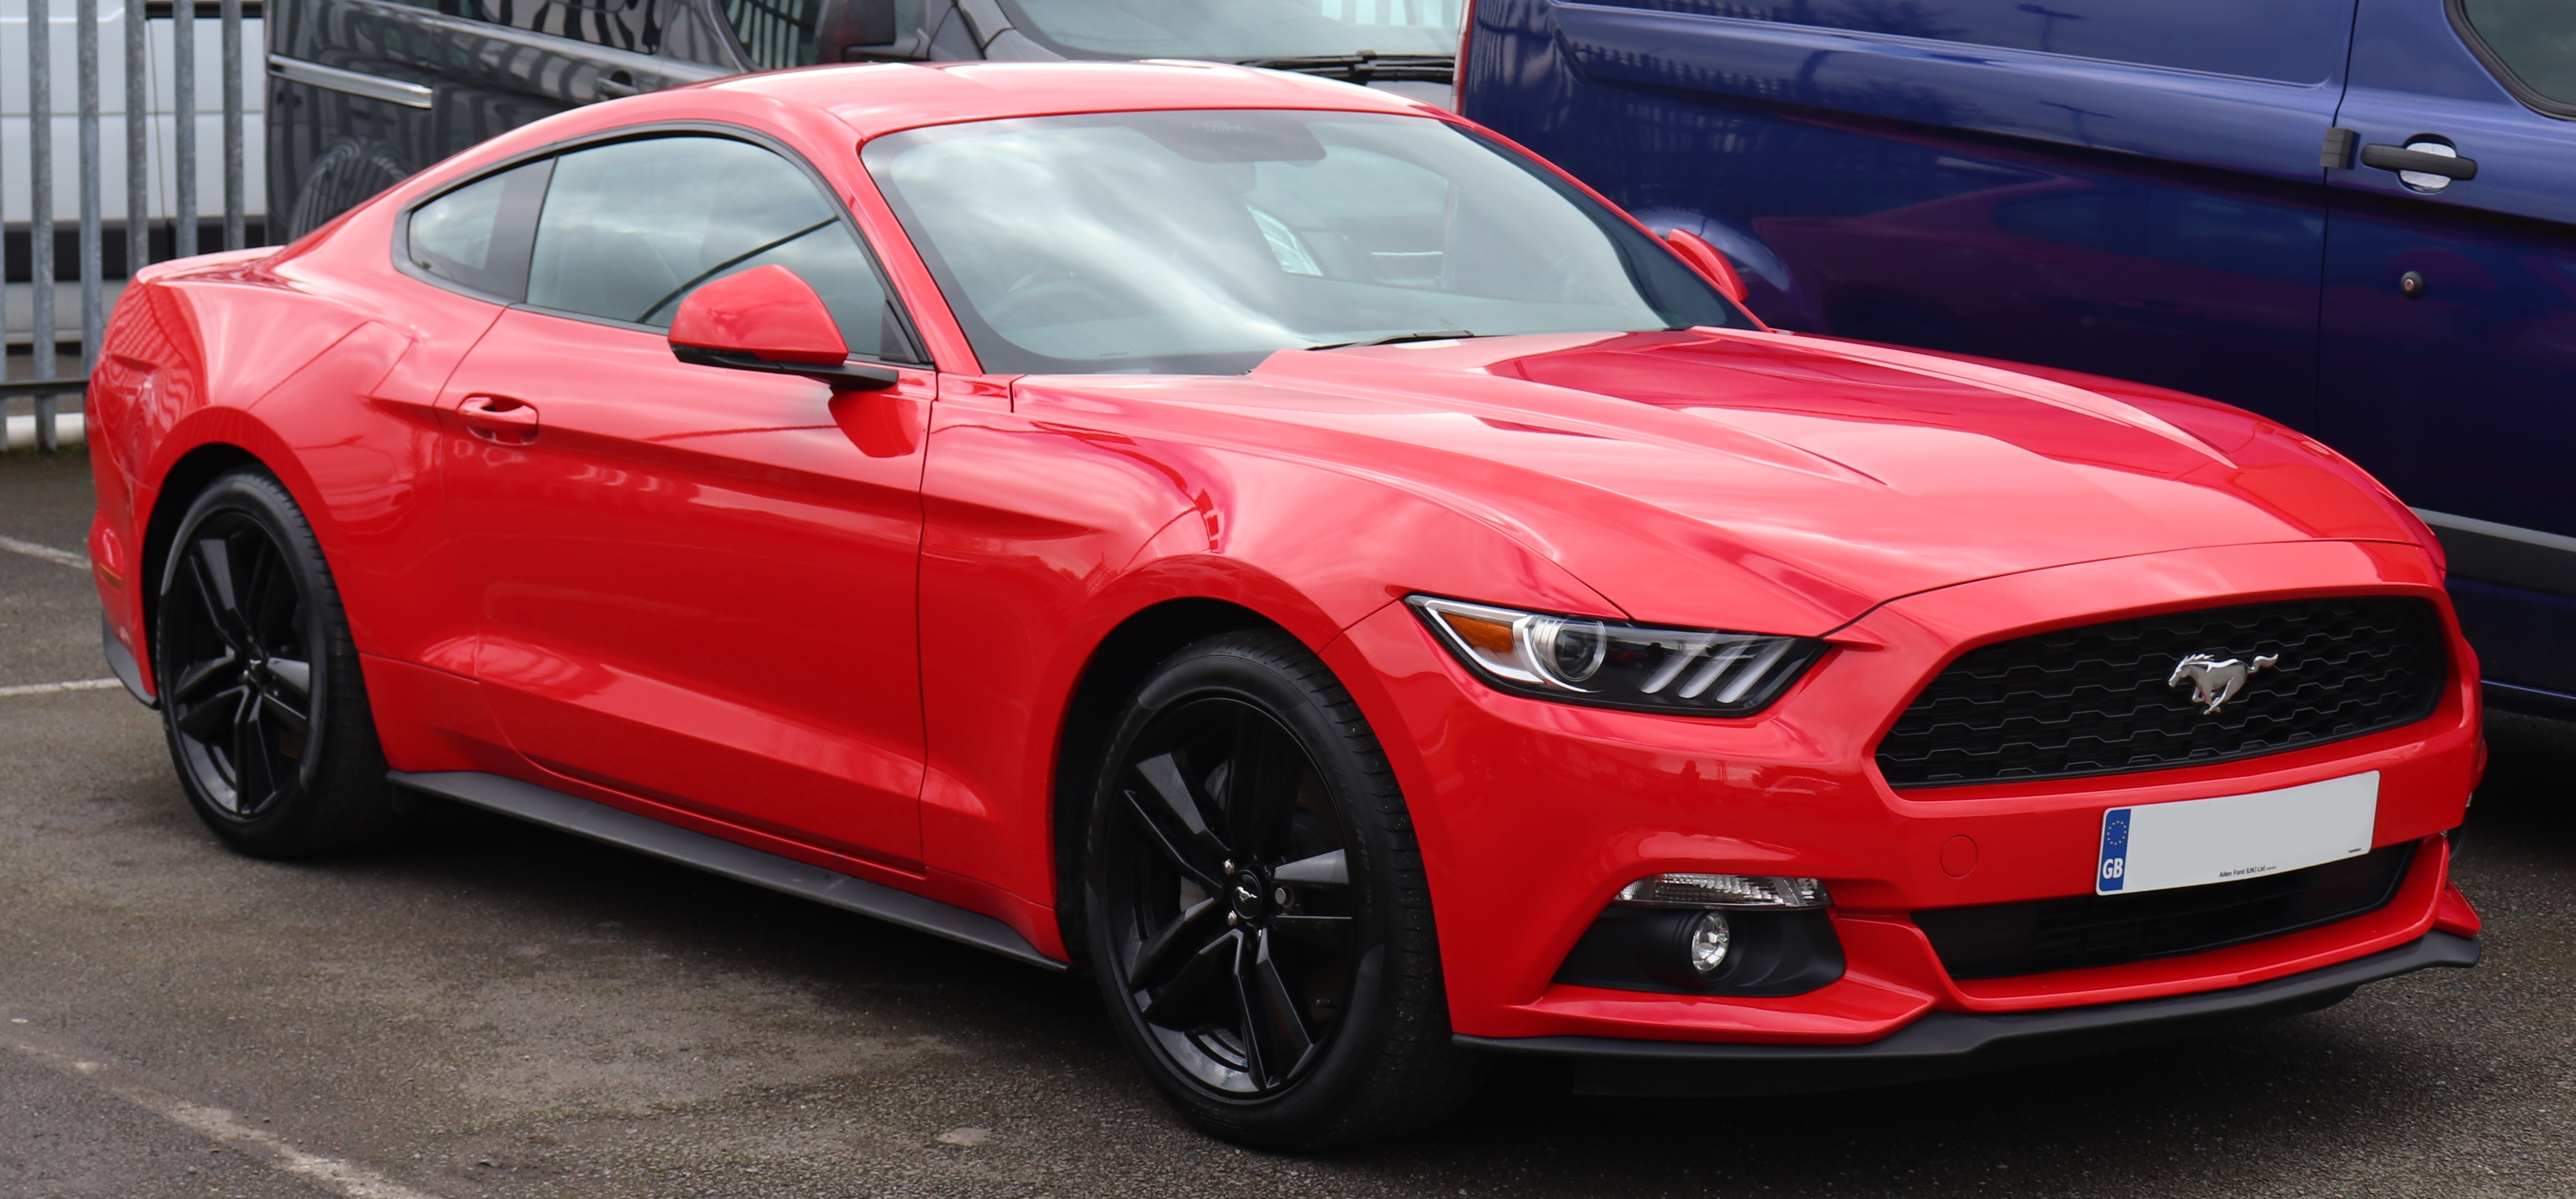 File2017 ford mustang ecoboost 2 3 front jpg